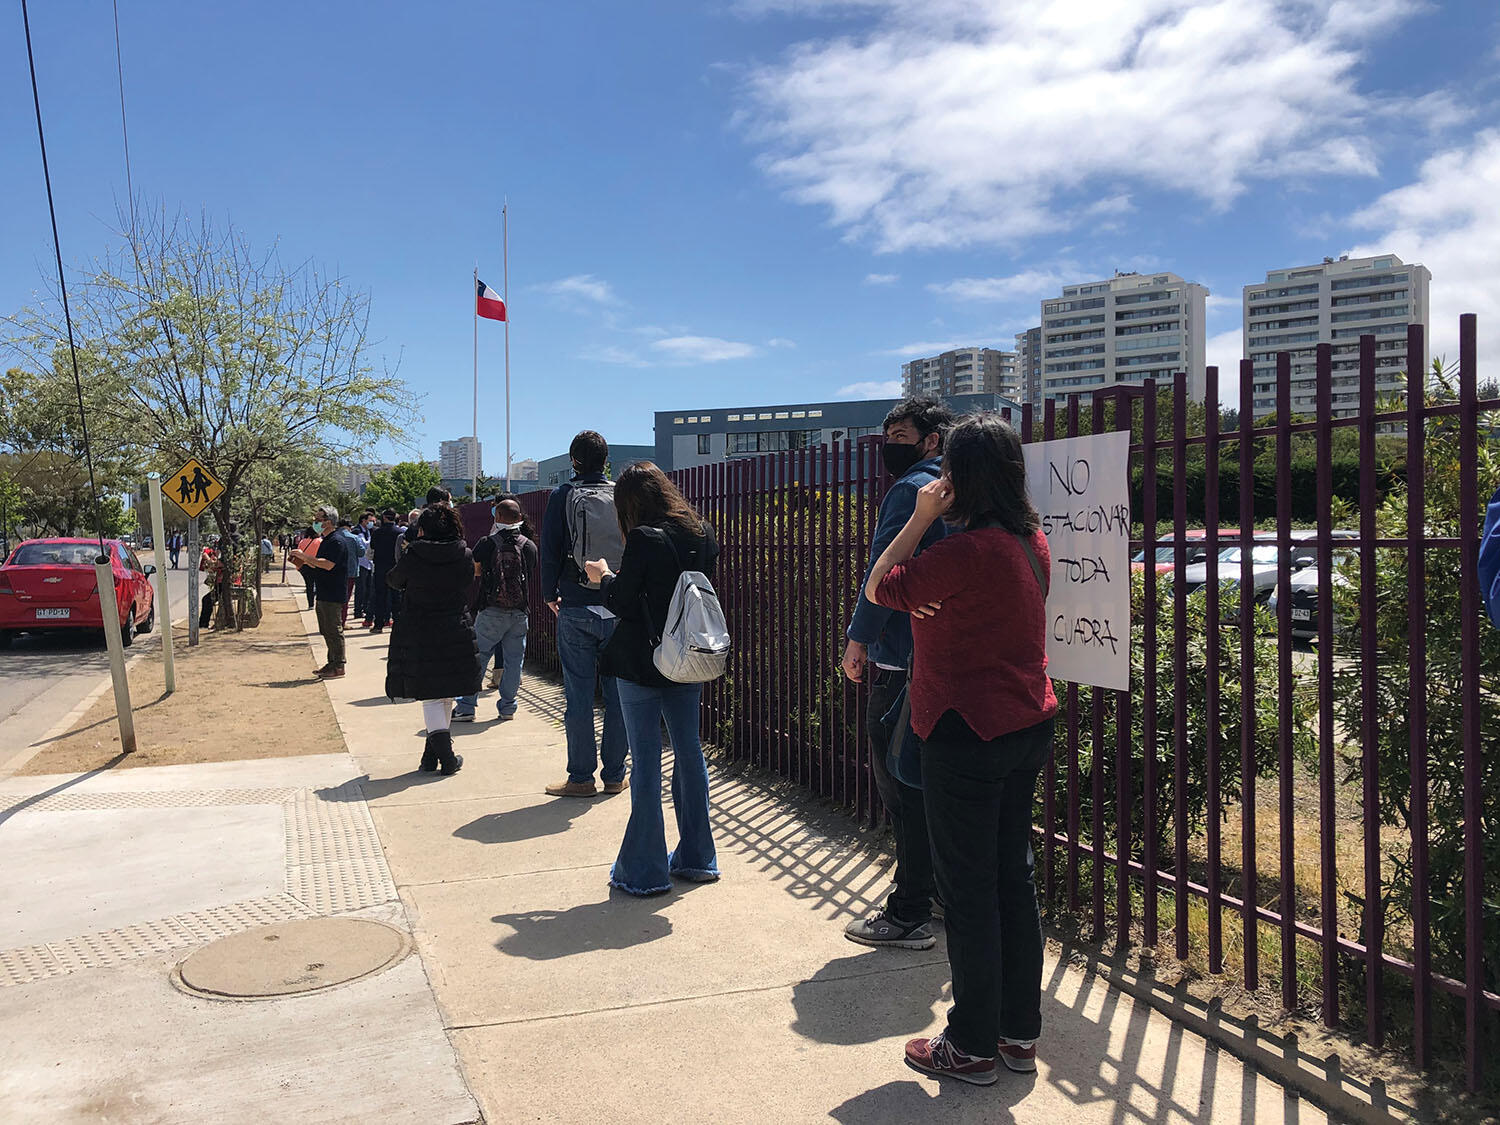 A socially distanced queue to vote during Chile's constitutional plebiscite on October 25, 2020. (Photo by Janet Waggaman.)